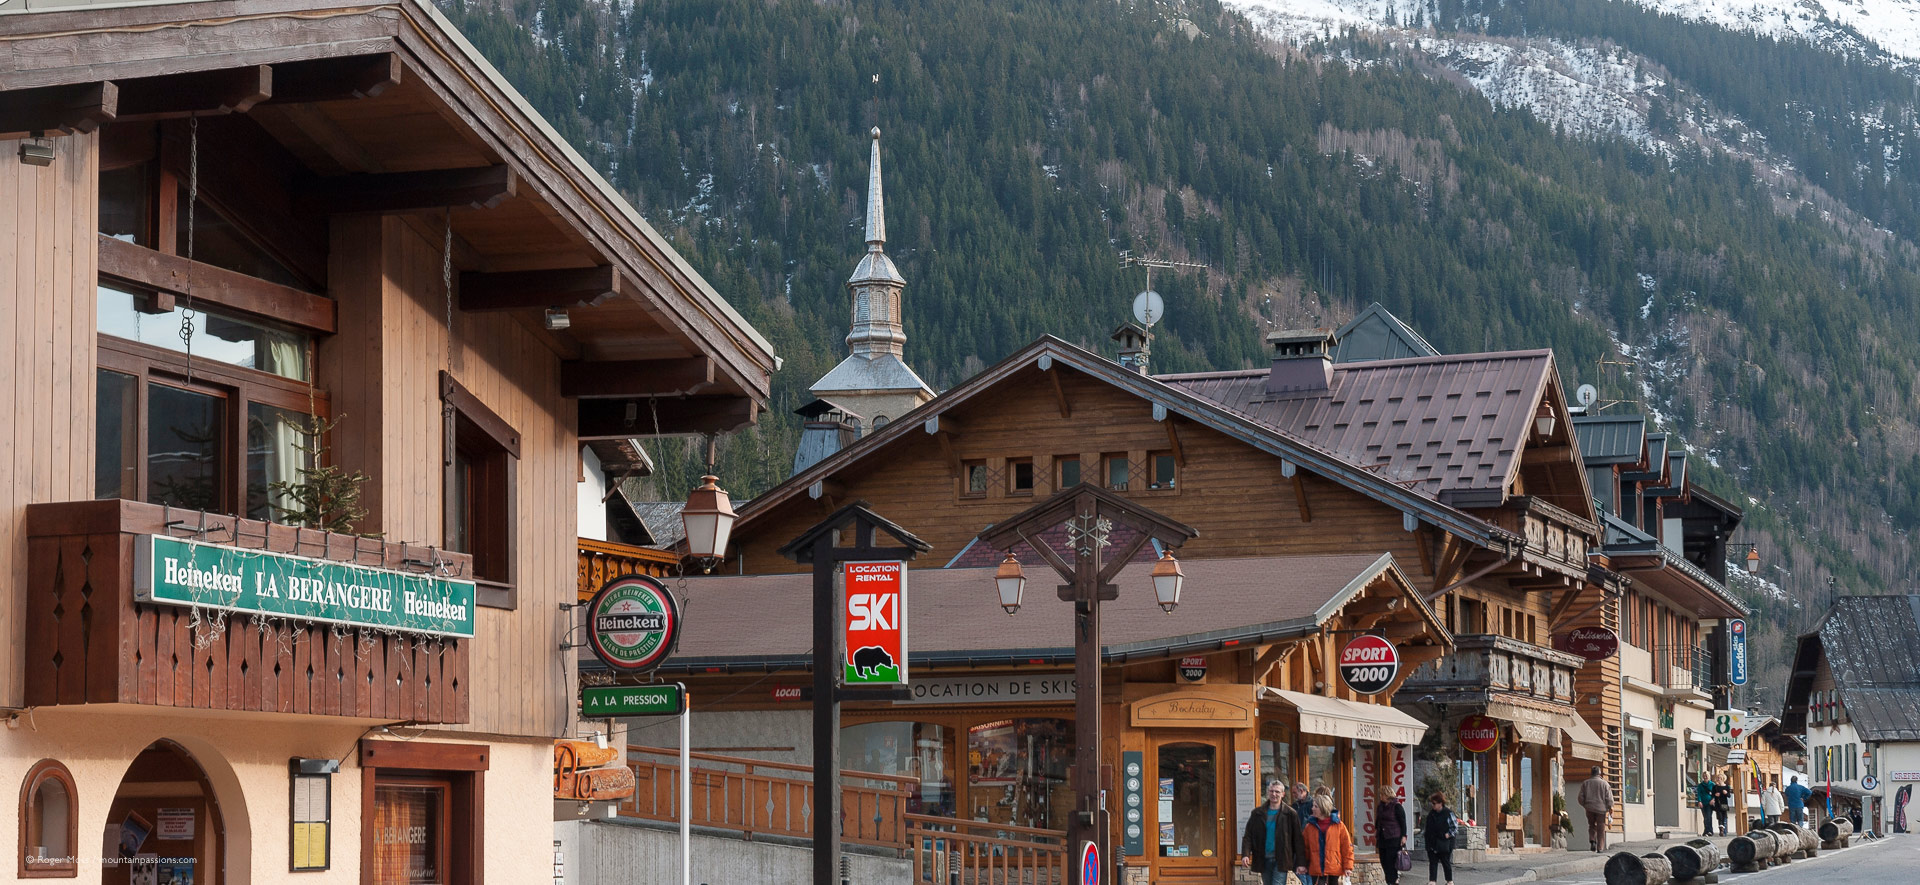 Chalet-style village centre with mountainside background.